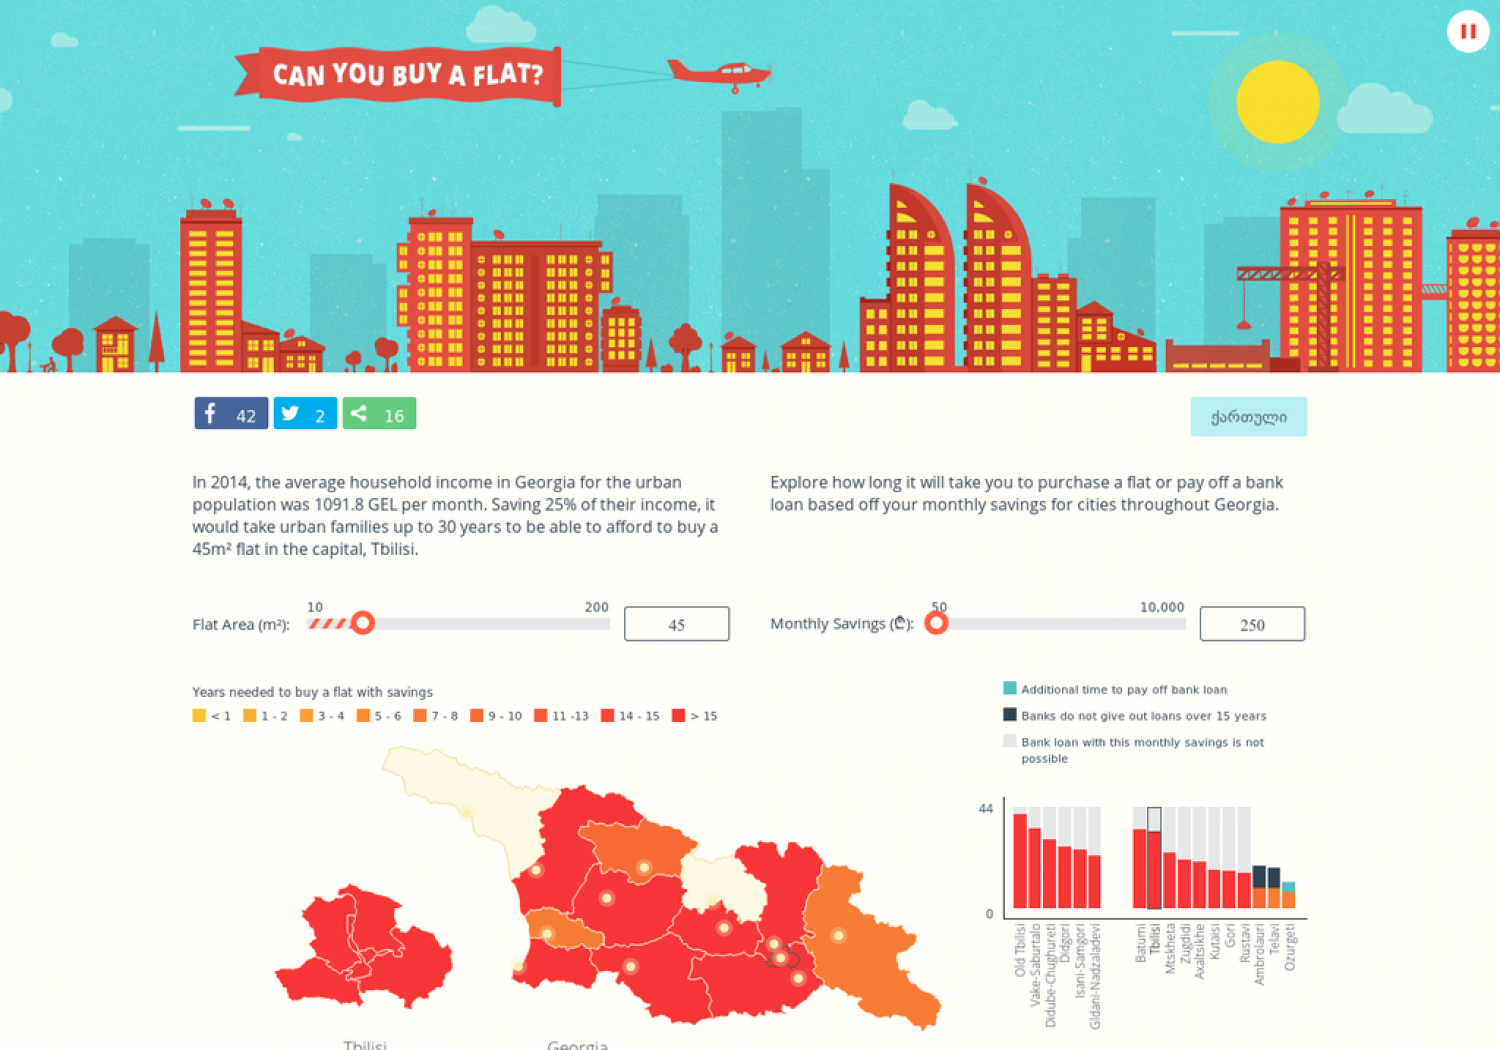 Can you buy a flat? (In Georgia) Infographic